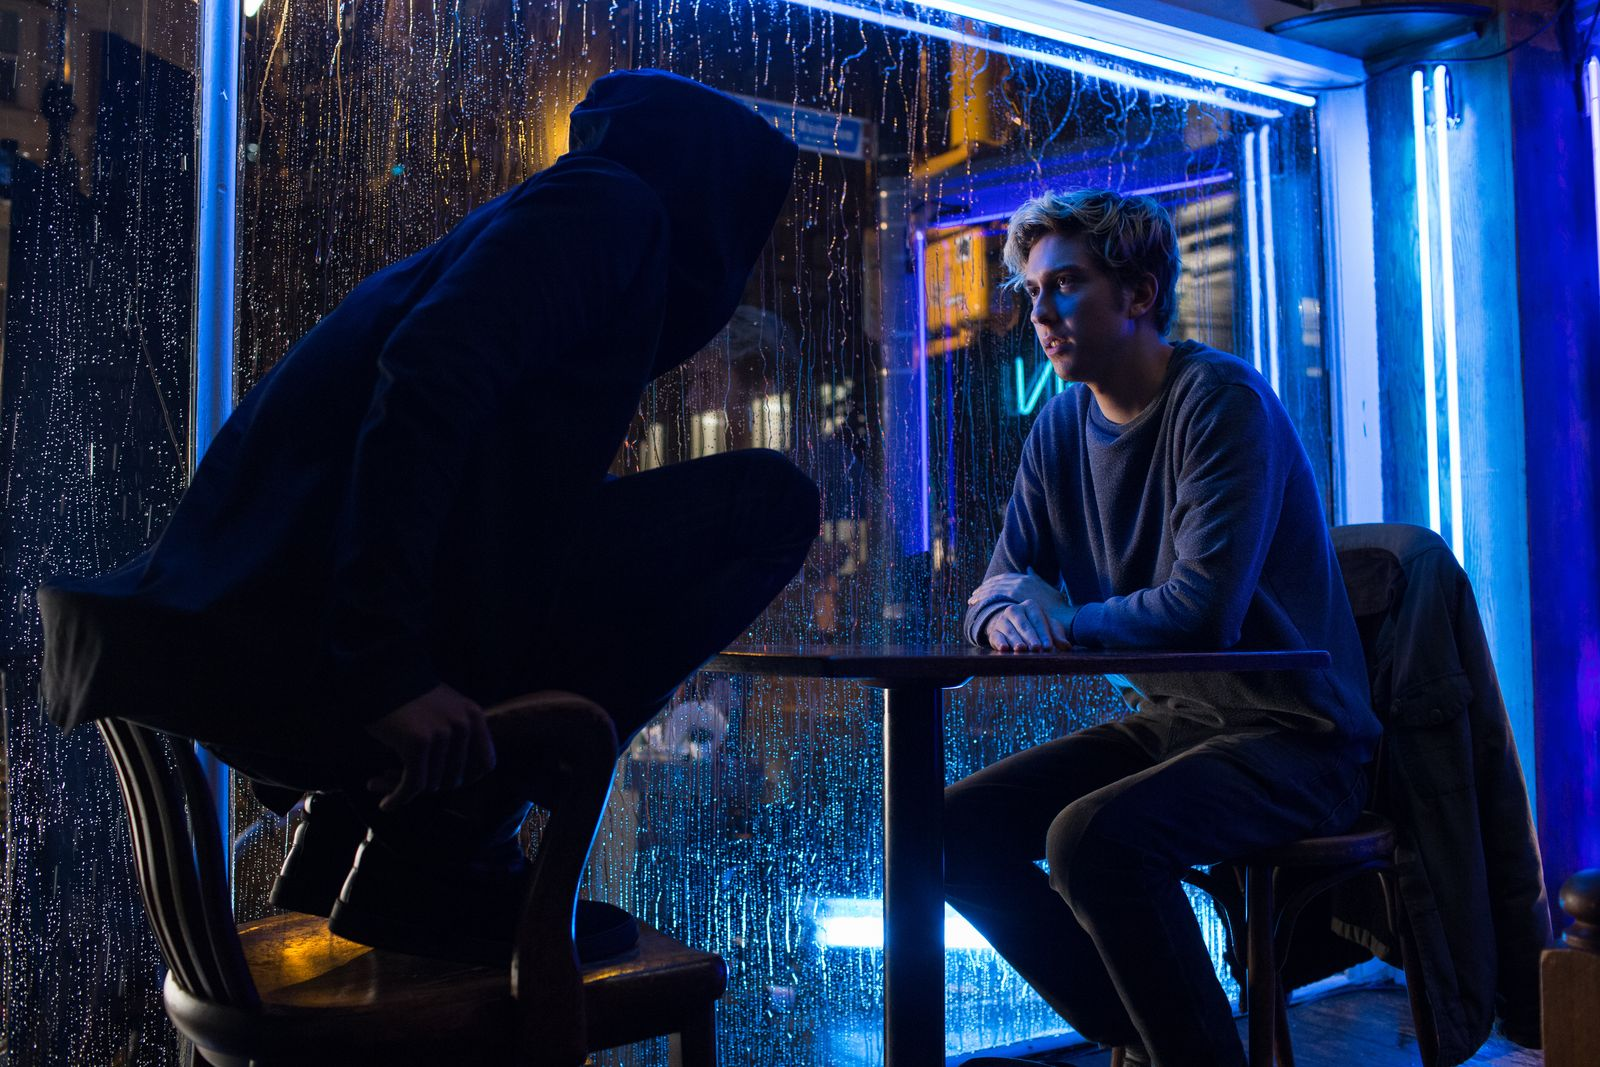 Light Encounters A World-Famous Detective In First Official Still For Netflix's Death Note